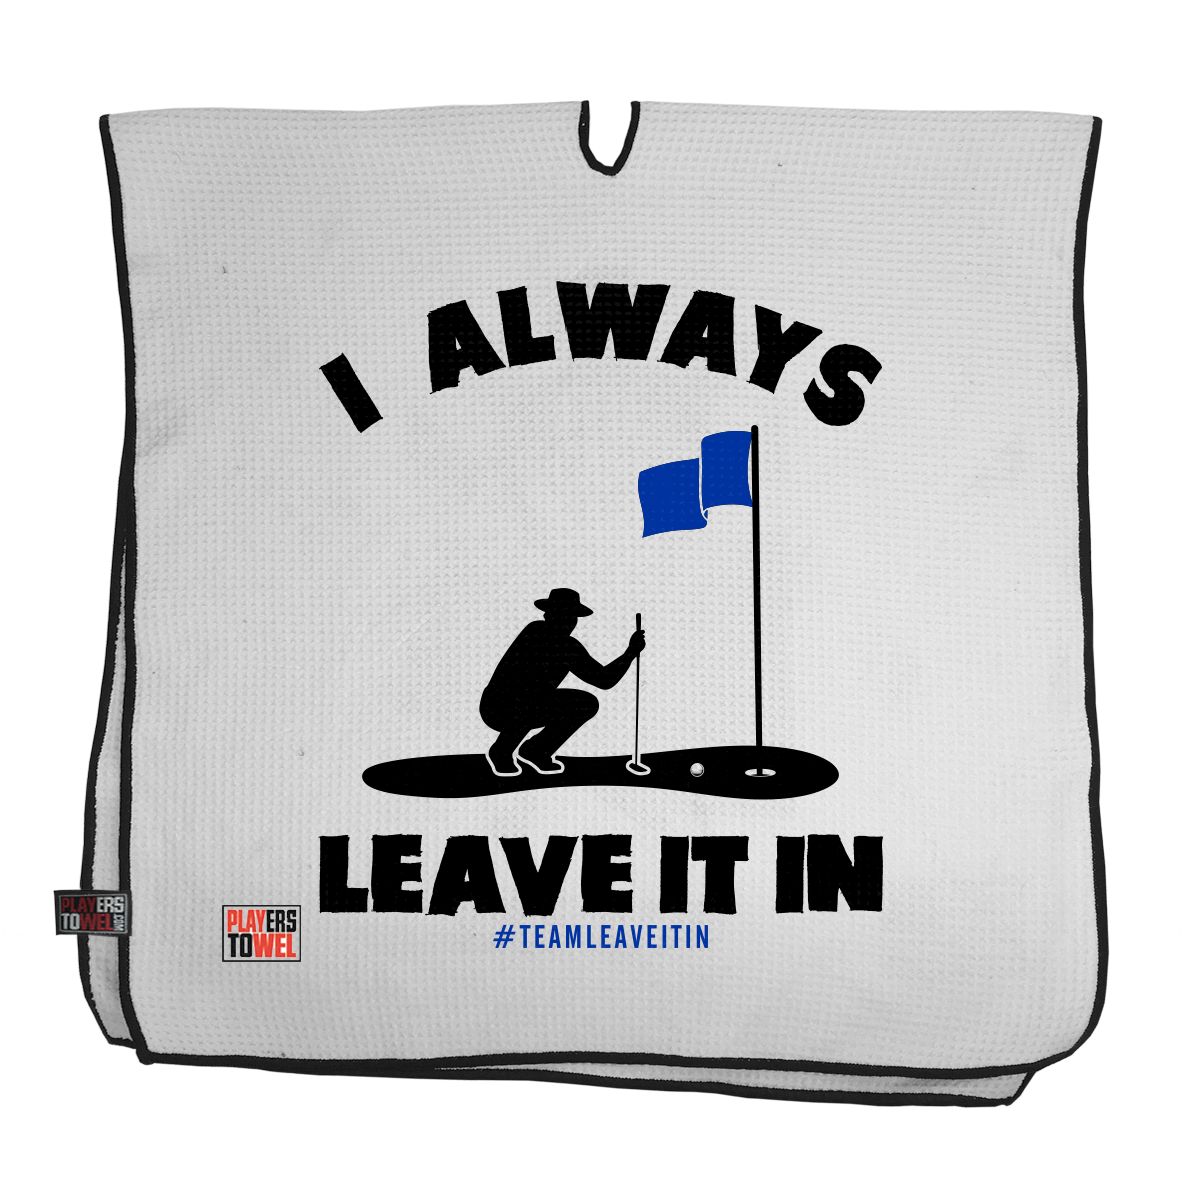 Leave It In Player Towel